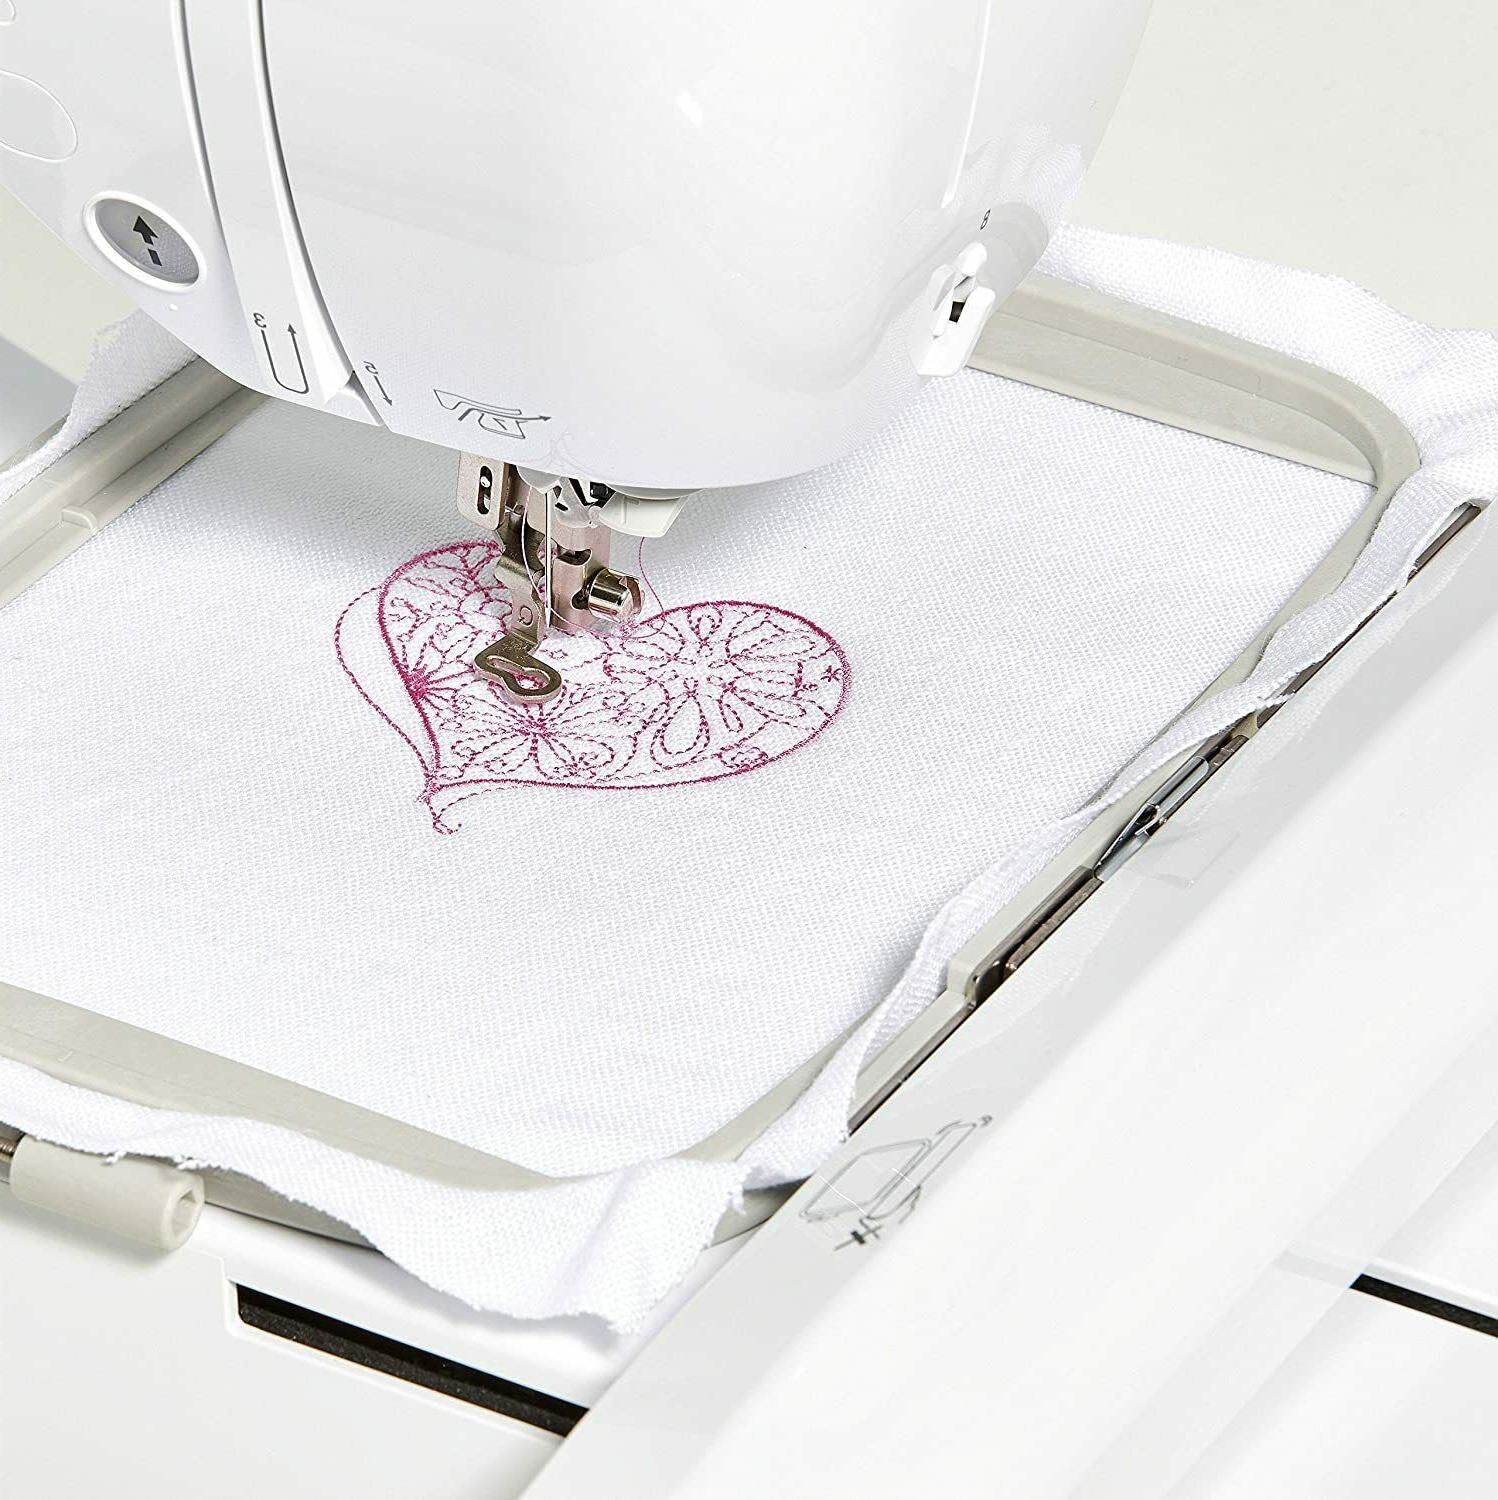 BRAND Embroidery Machine Built-in Designs USB